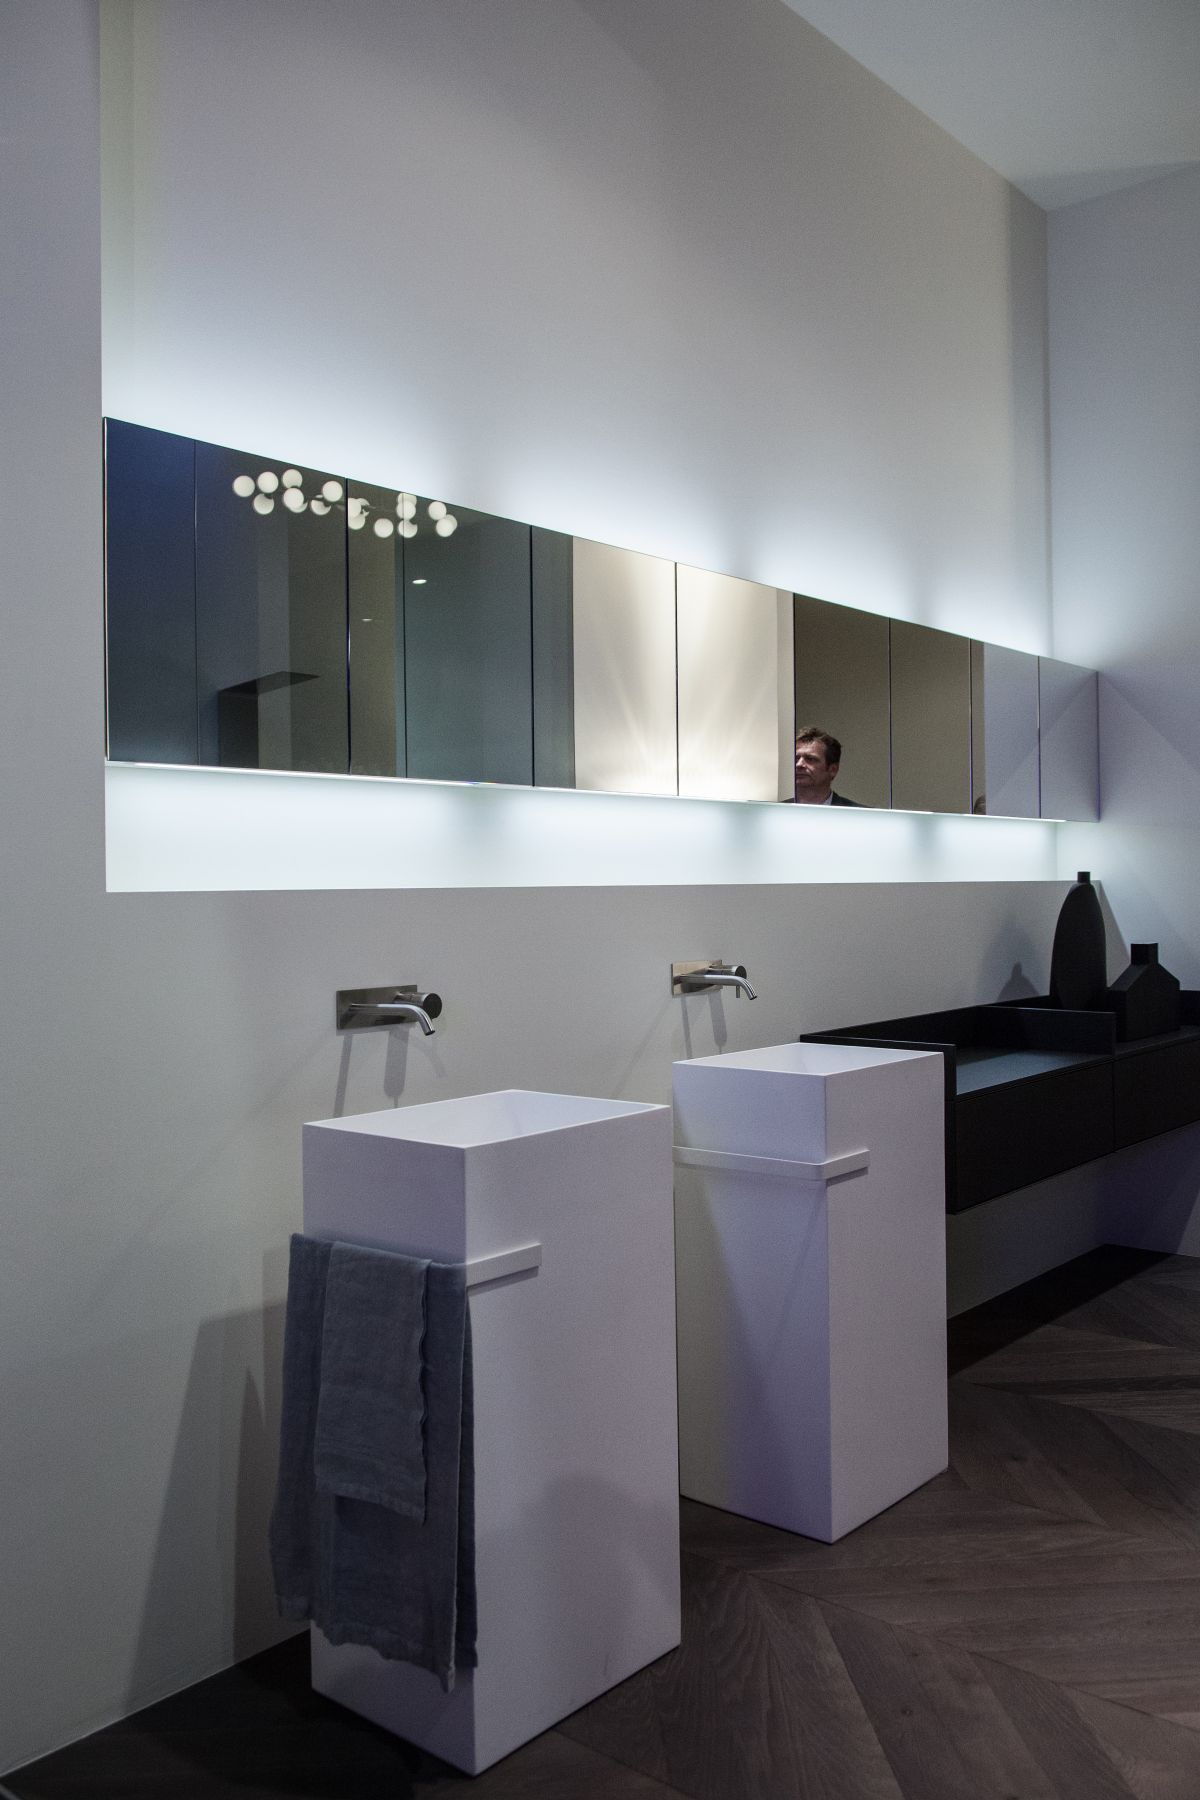 Teatro mirror with cabinets and lights from Anntonio Lupi